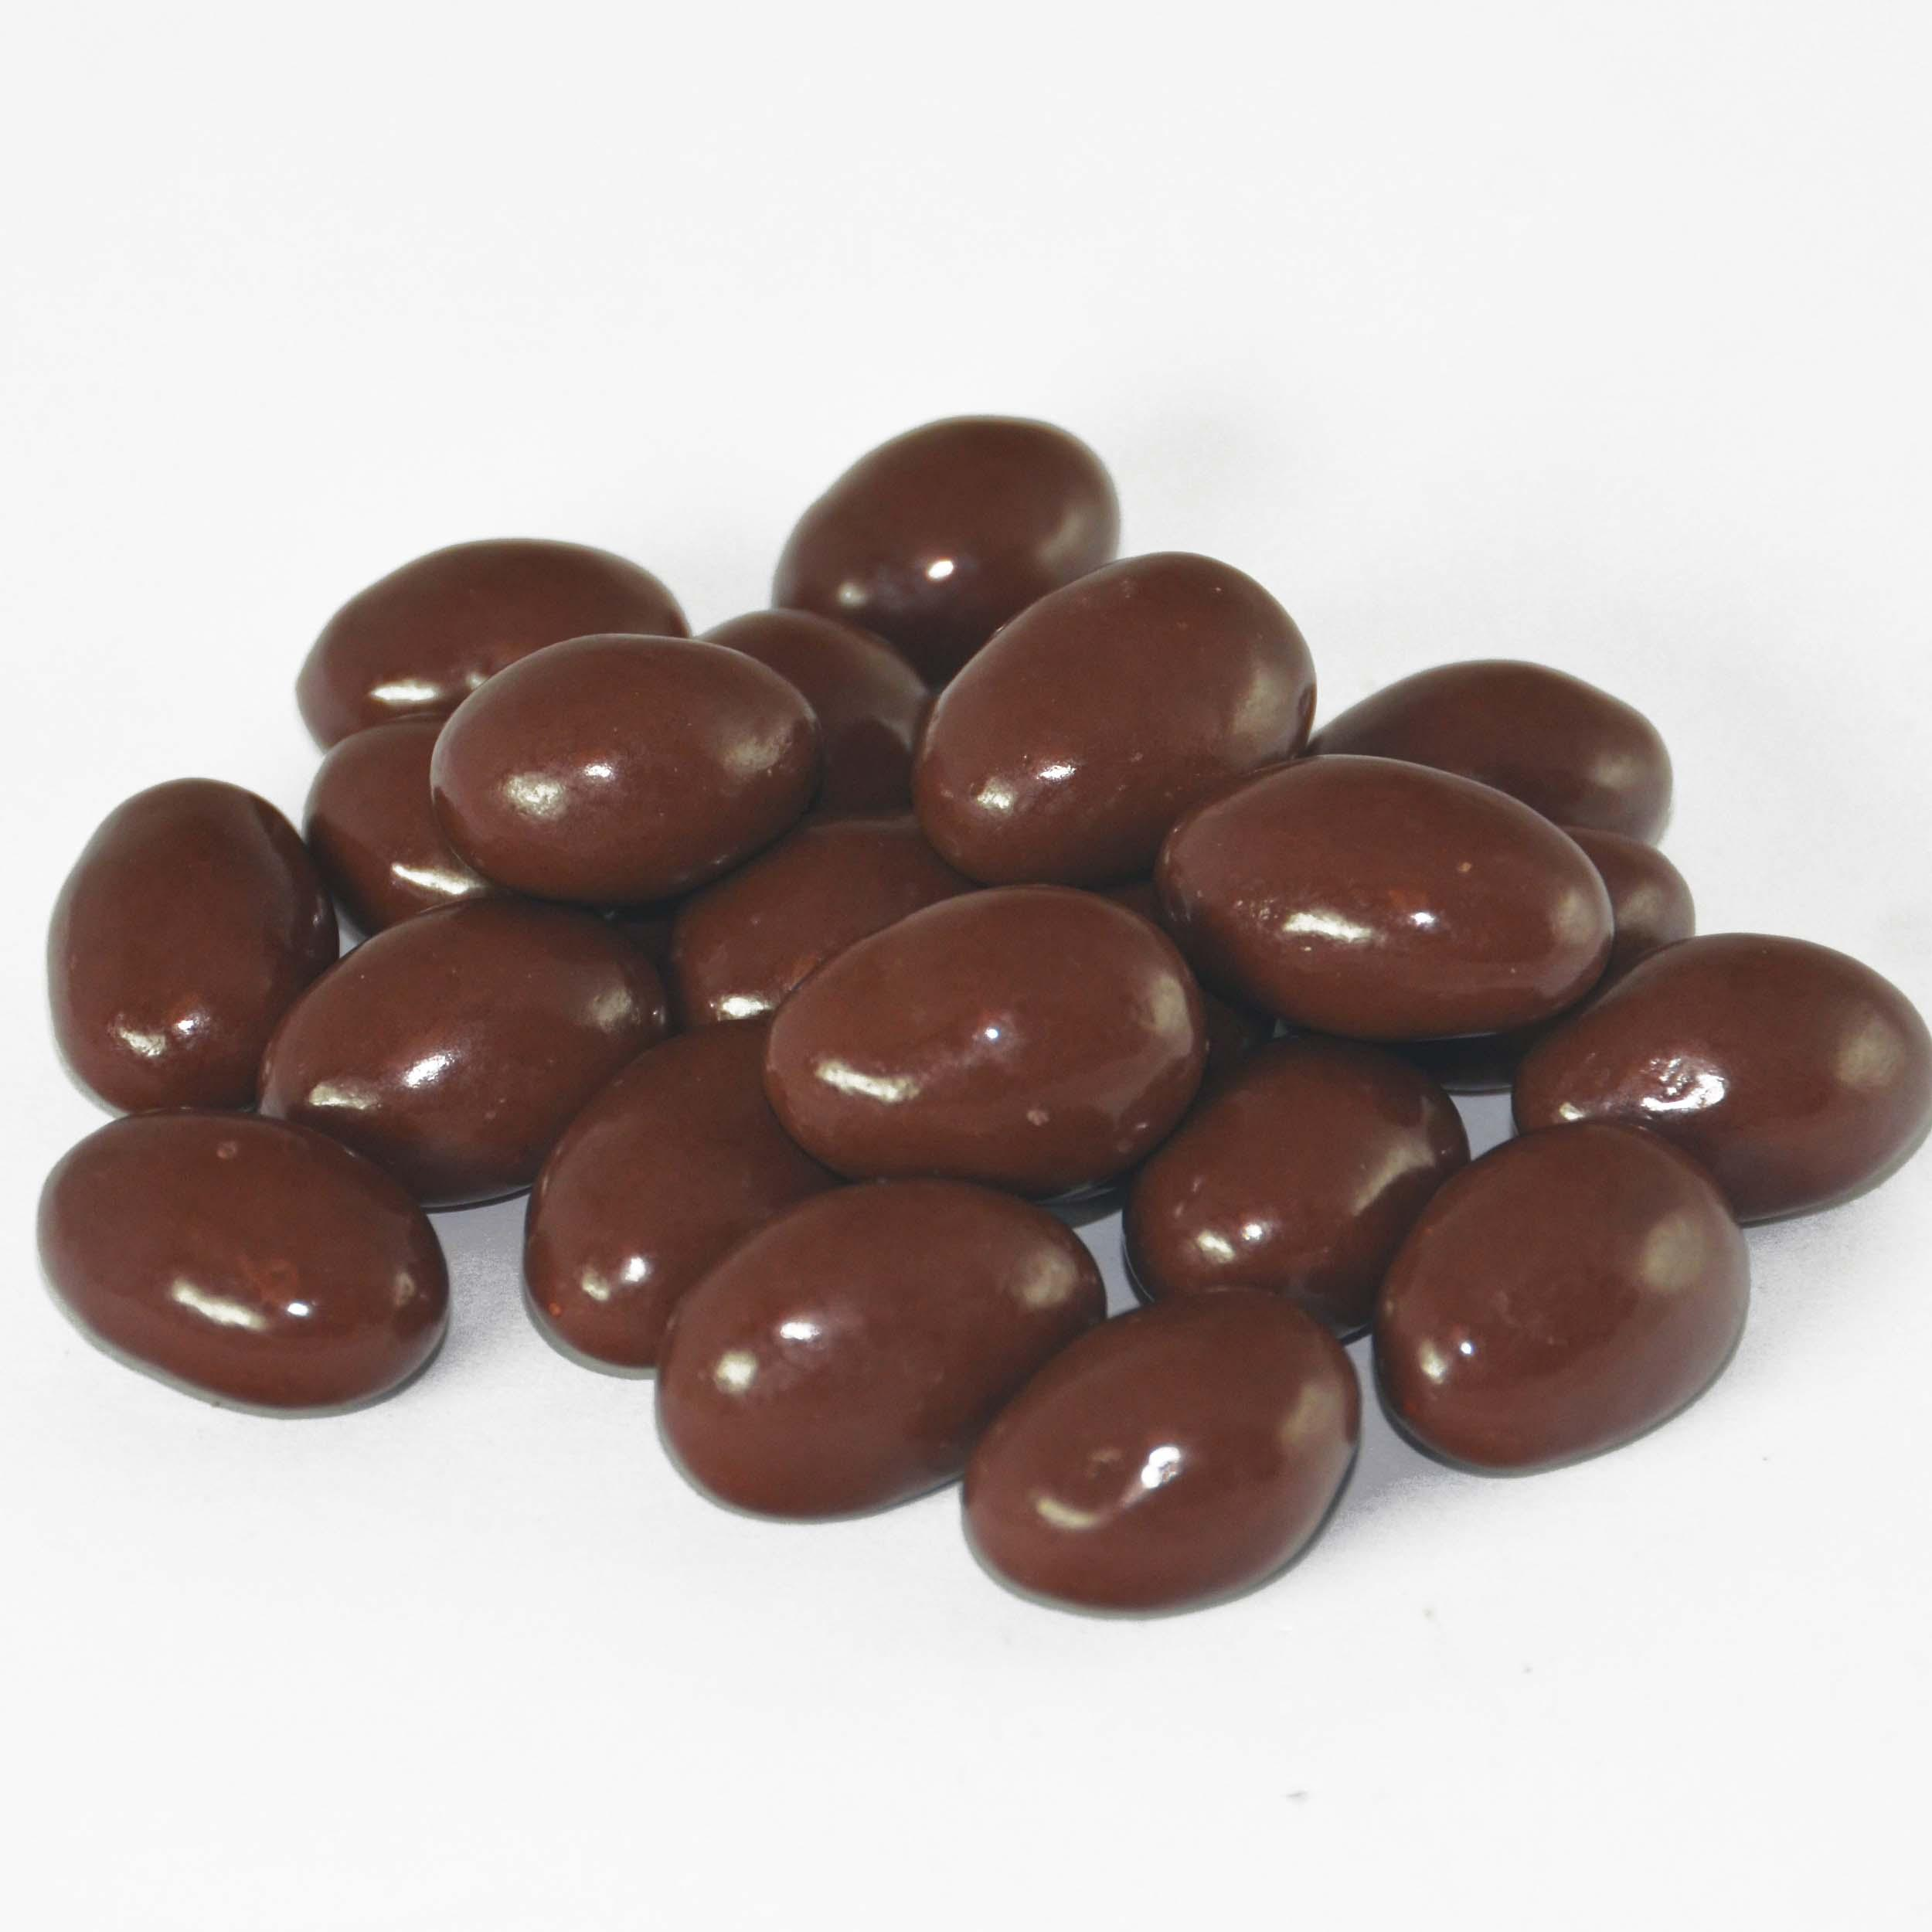 chocolate covered almonds healthy